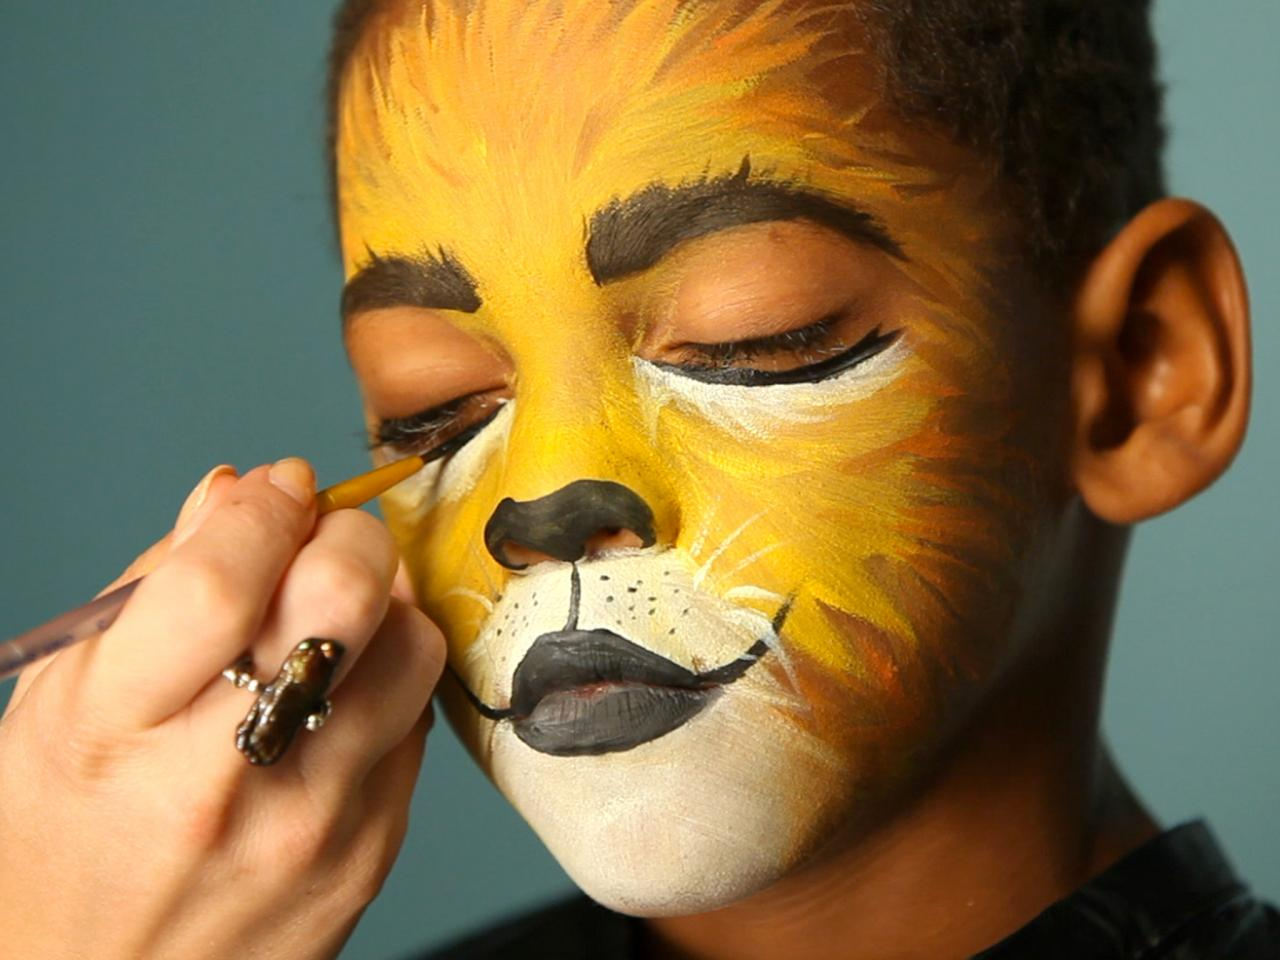 facepainting young mixed race boy